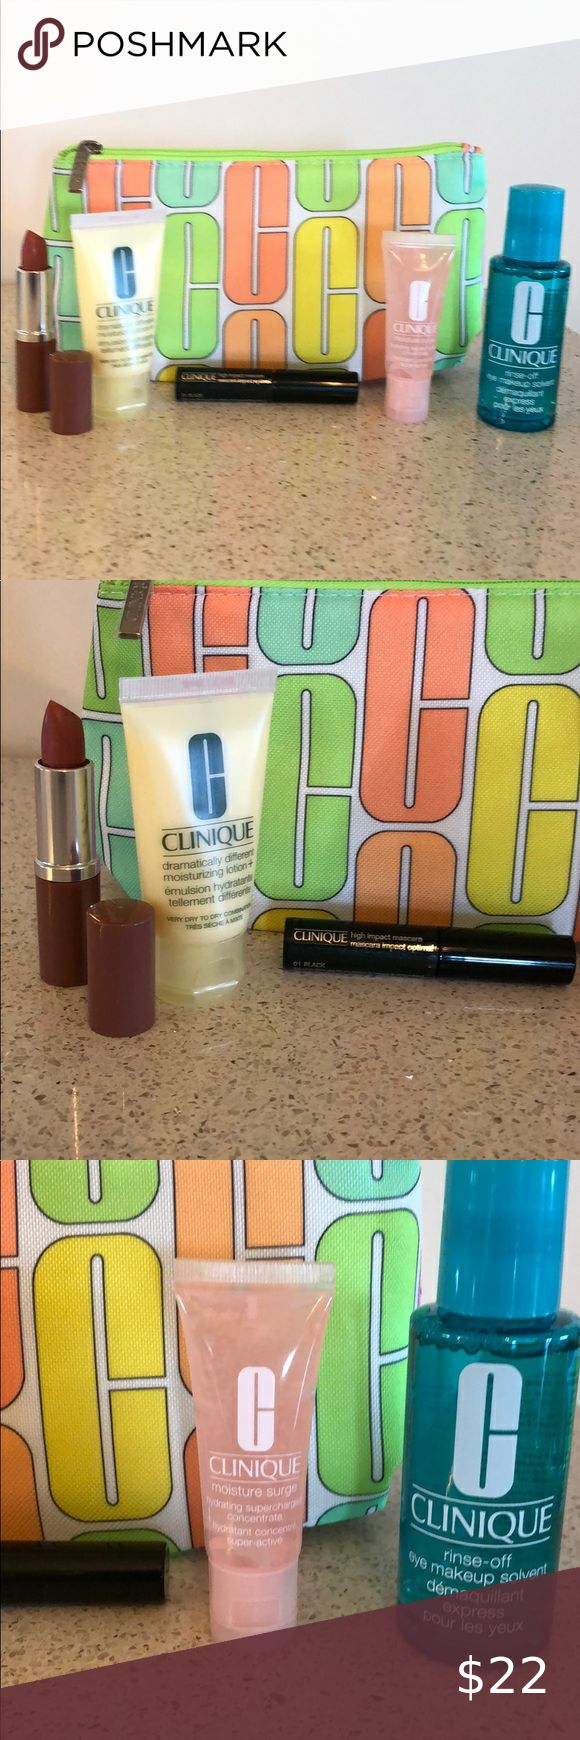 NWOT Clinique bag with goodies NWOT Brand New 2020